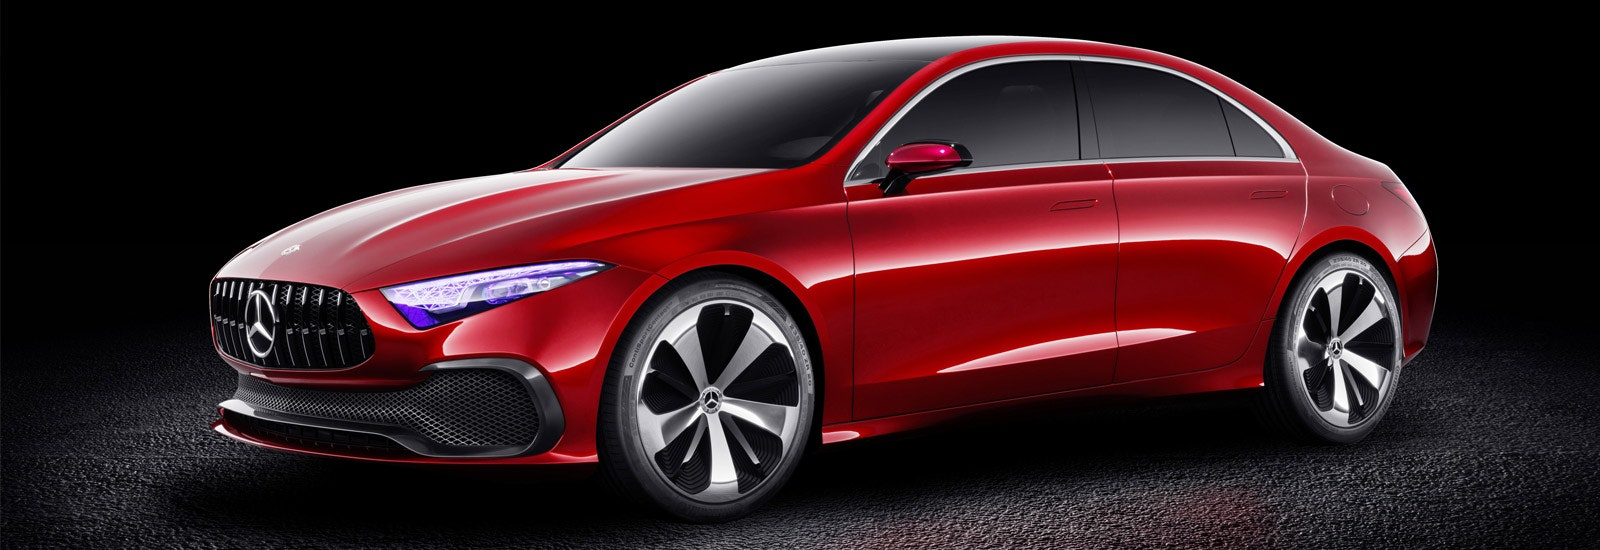 2018 Mercedes A Class Saloon Price Specs And Release Date